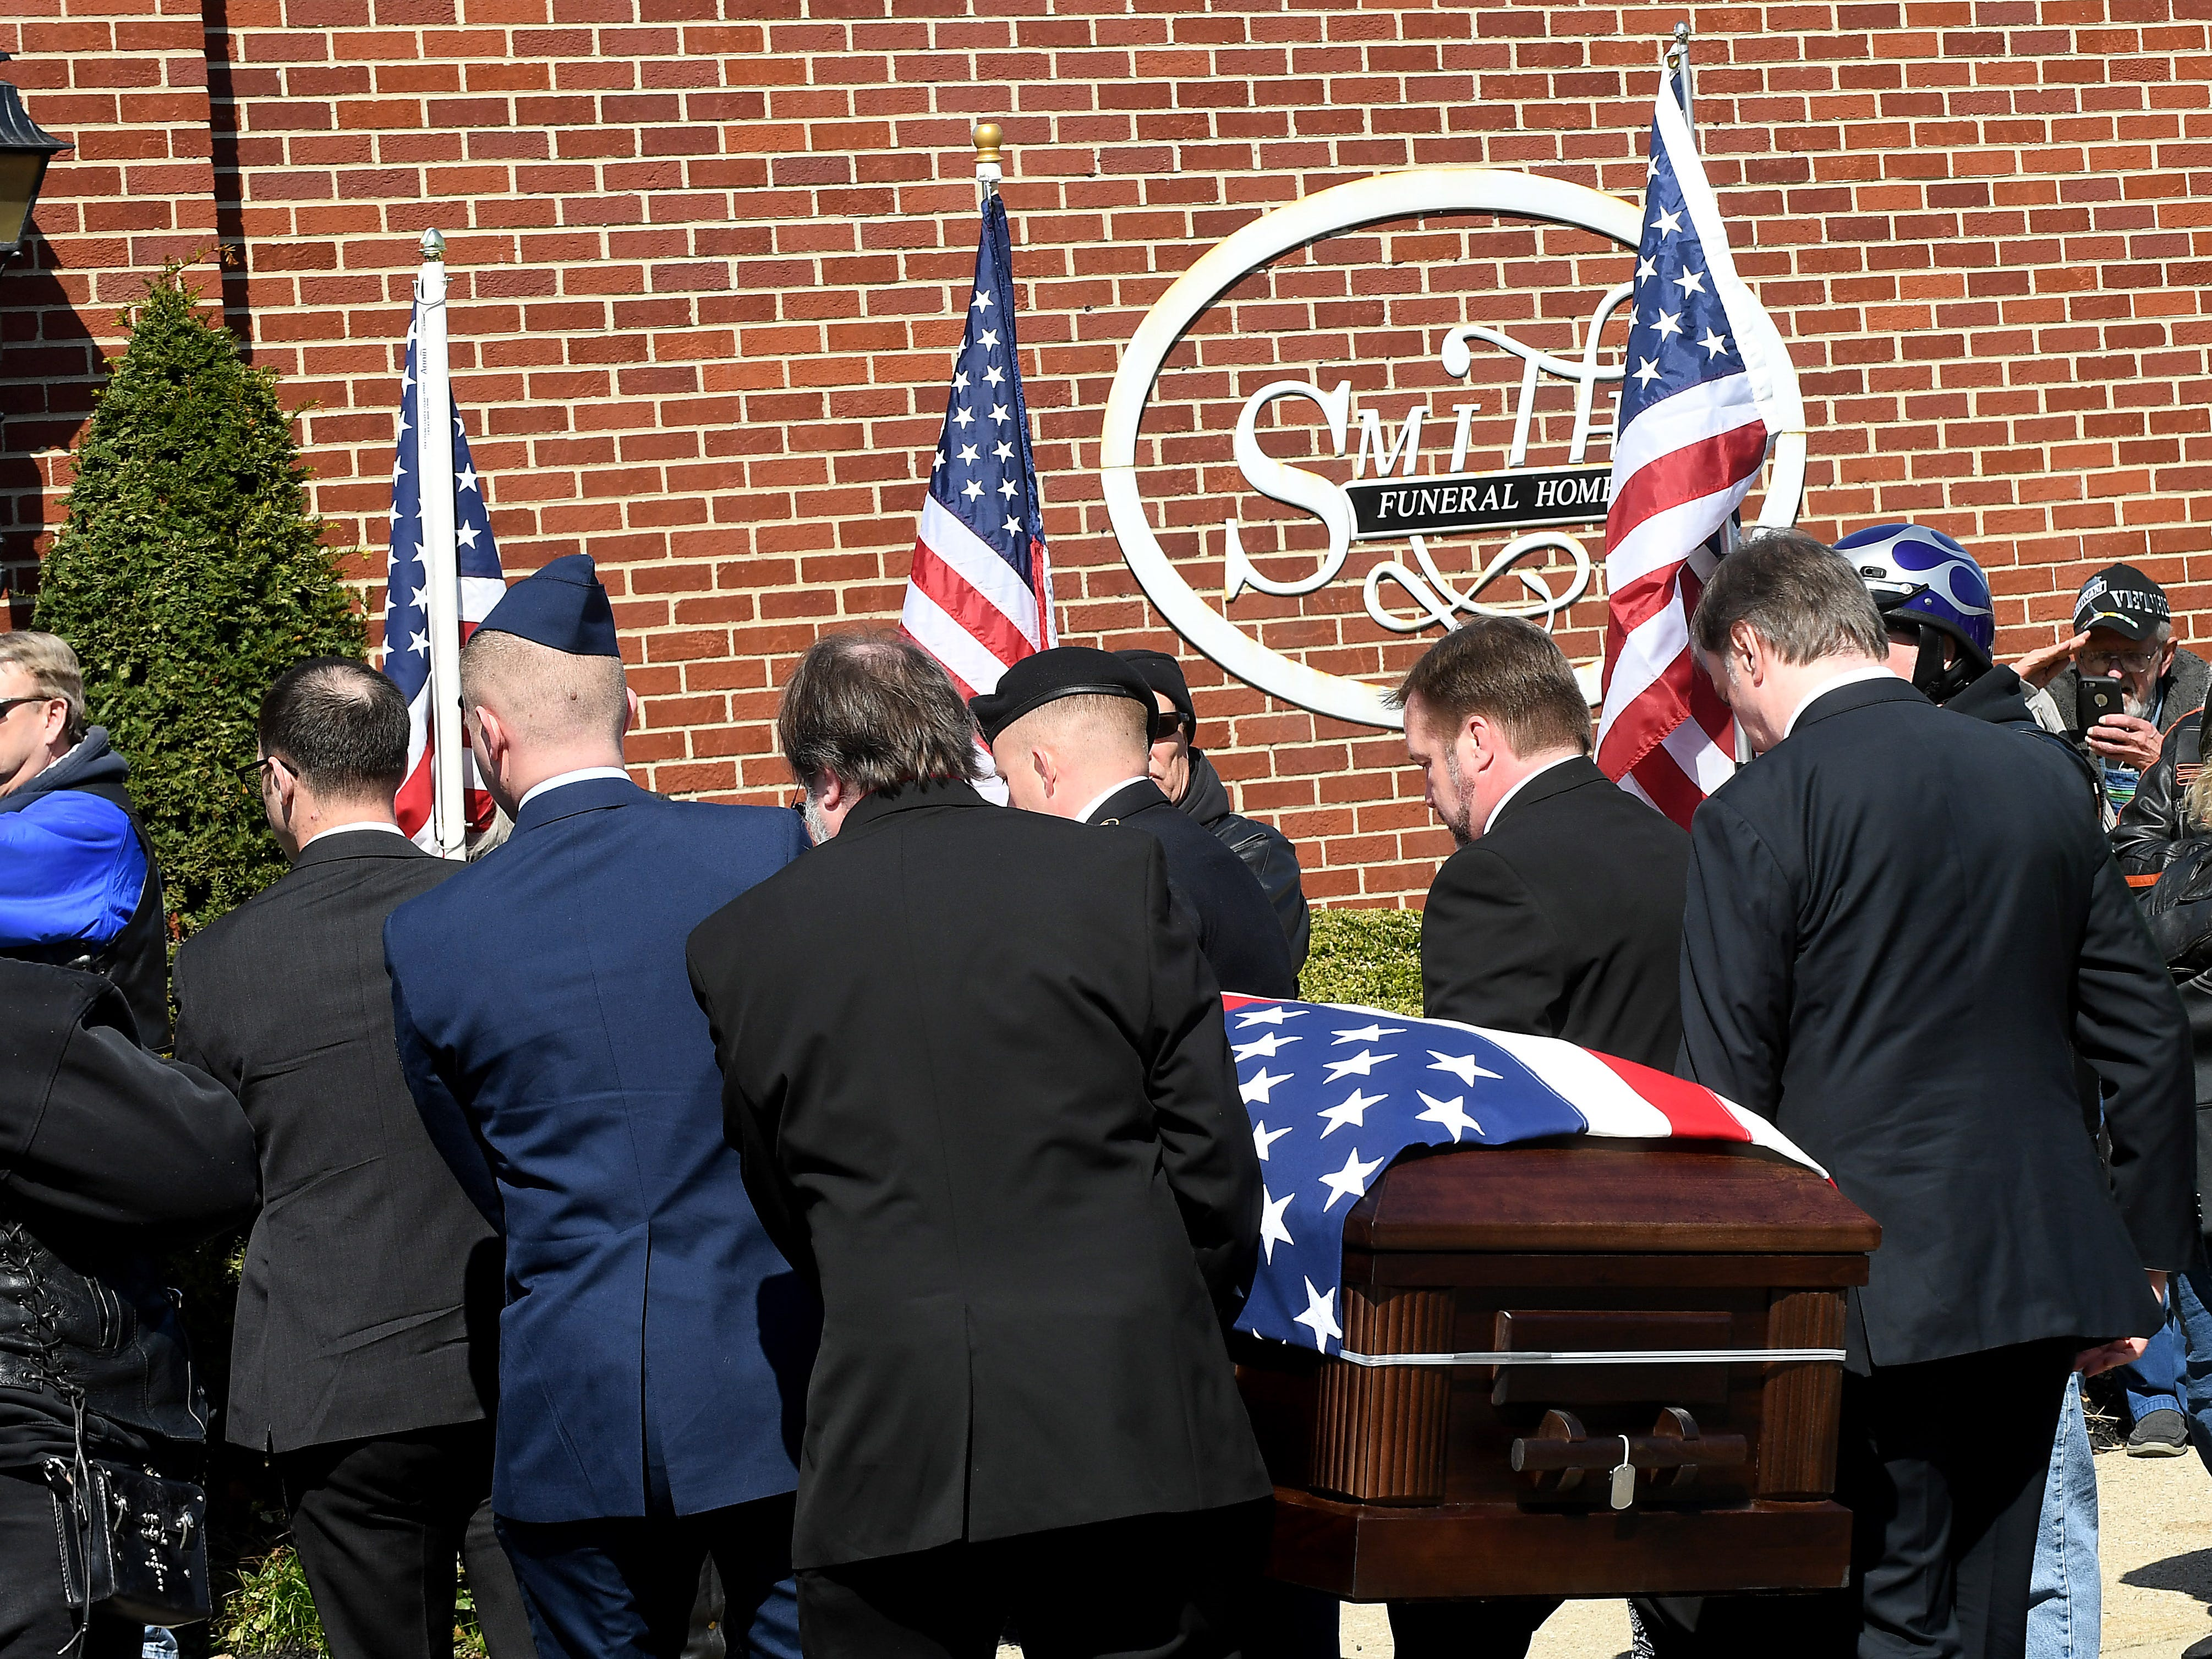 The casket of U.S. Army Sgt. Joseph Collette is carried in to the Frank E. Smith Funeral Home after a procession from Rickenbacker International Airport in Columbus.